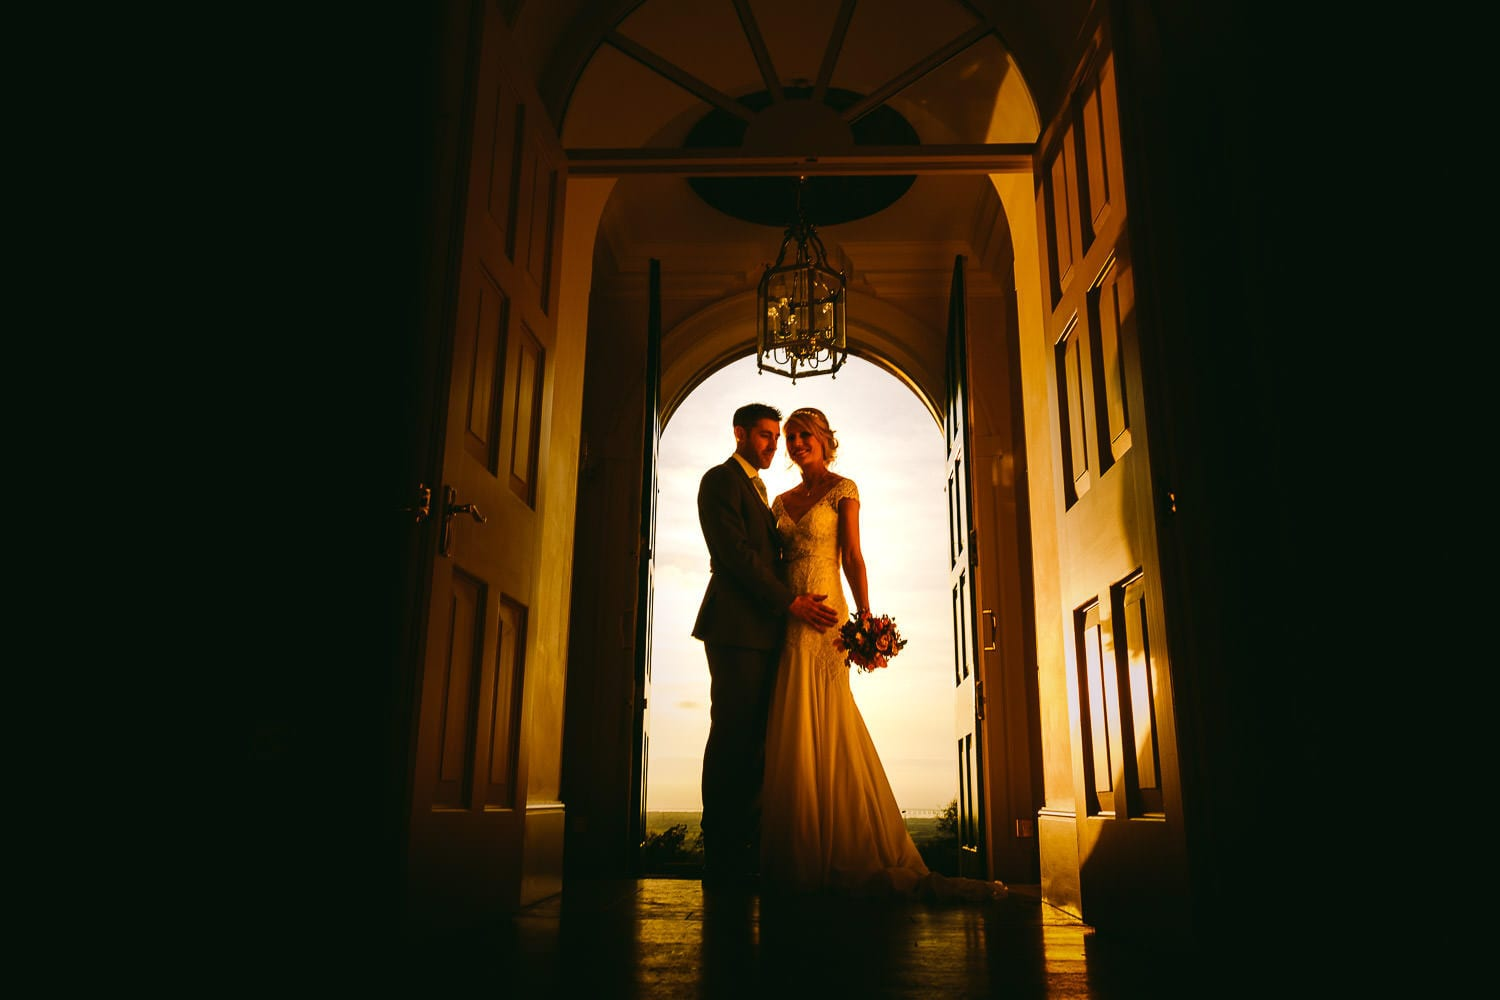 The newly married couple in the doorway